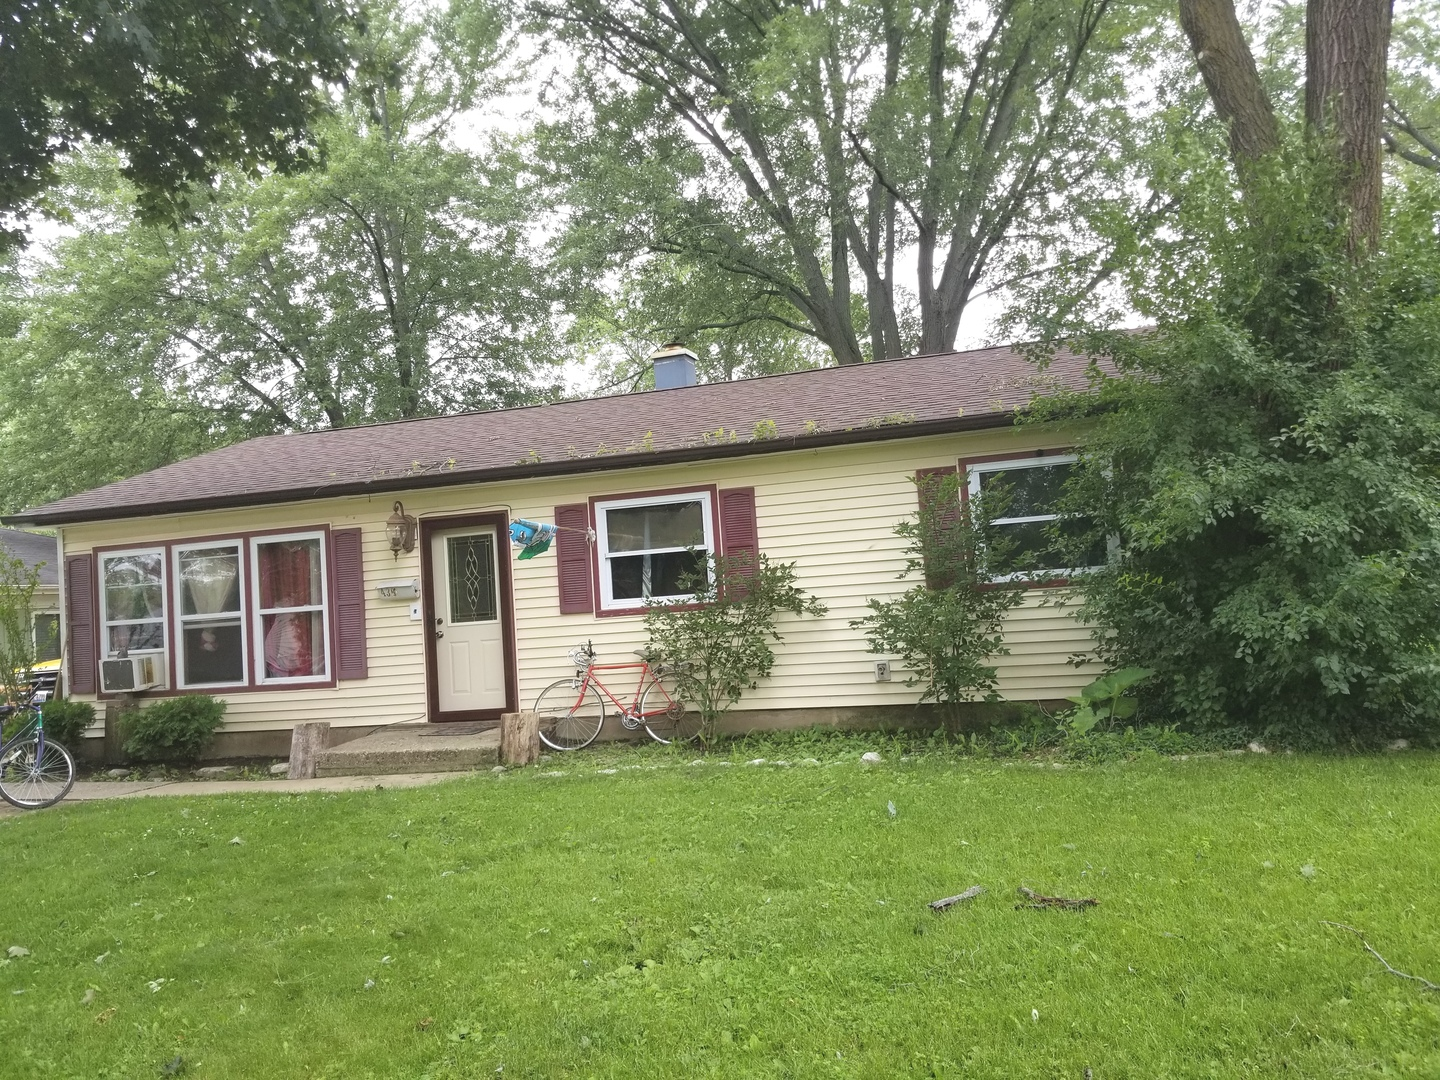 436 North Pershing Avenue, Mundelein in Lake County, IL 60060 Home for Sale